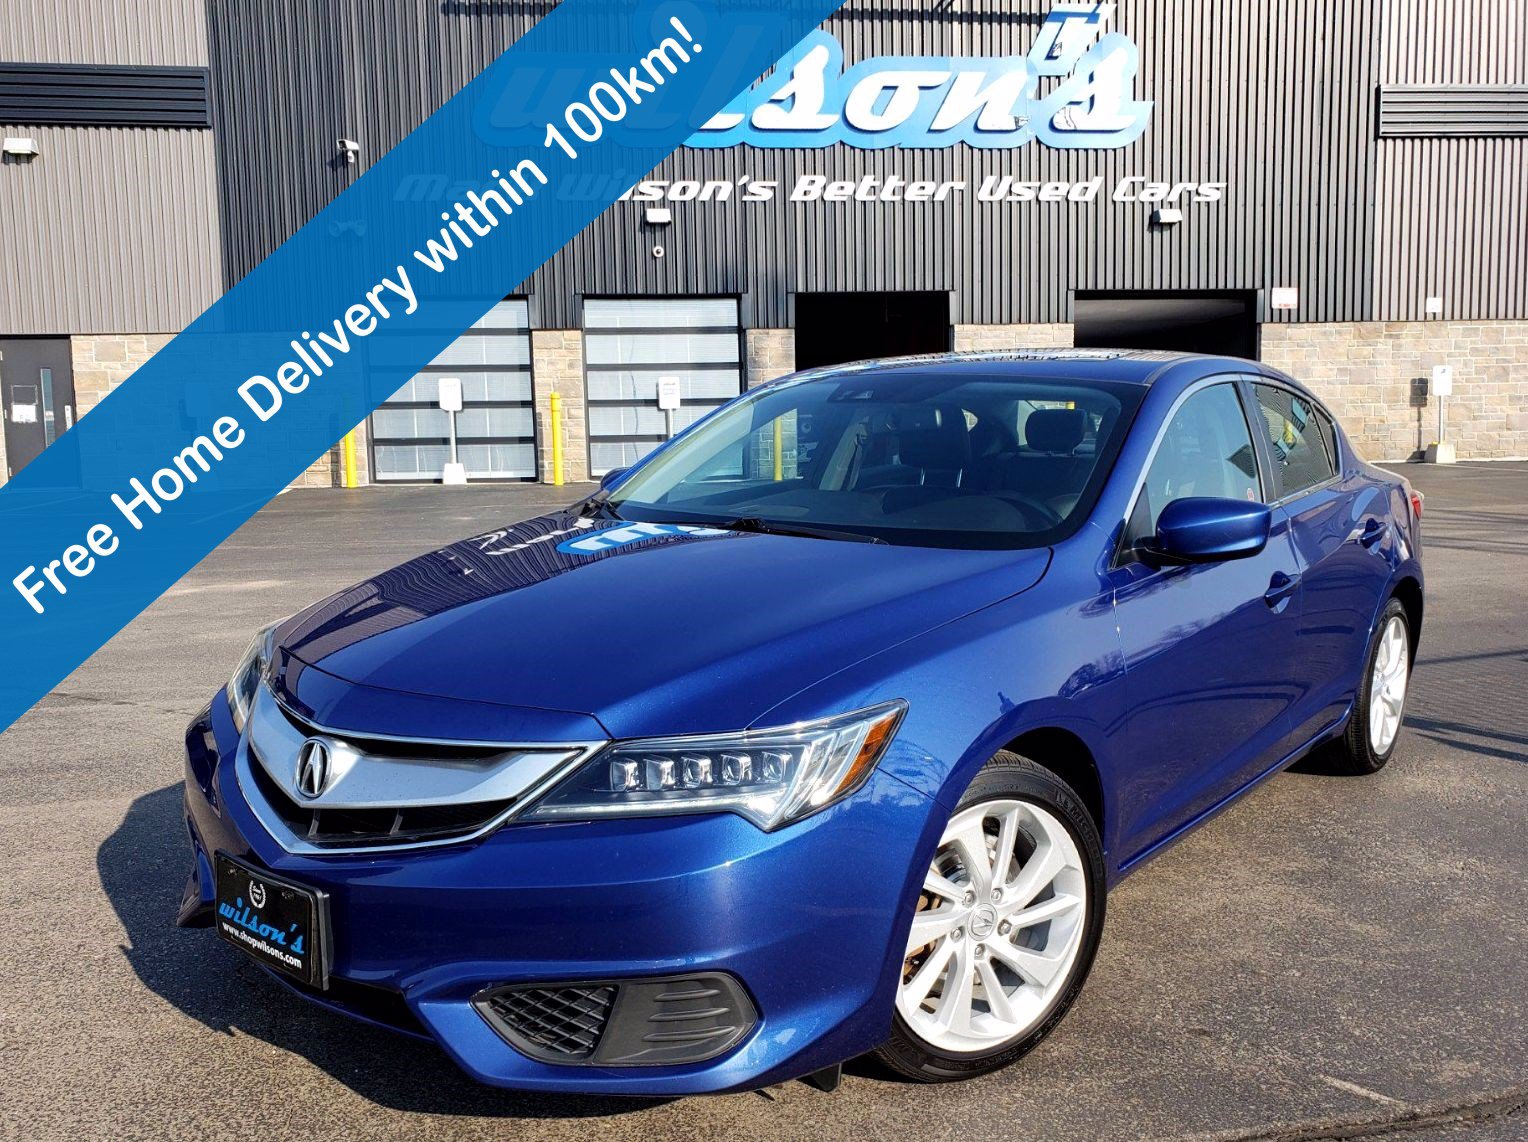 Certified Pre-Owned 2017 Acura ILX Technology Pkg, Navigation, Leather, Sunroof, Heated Seats, Bluetooth, Rear Camera, Alloys and more!